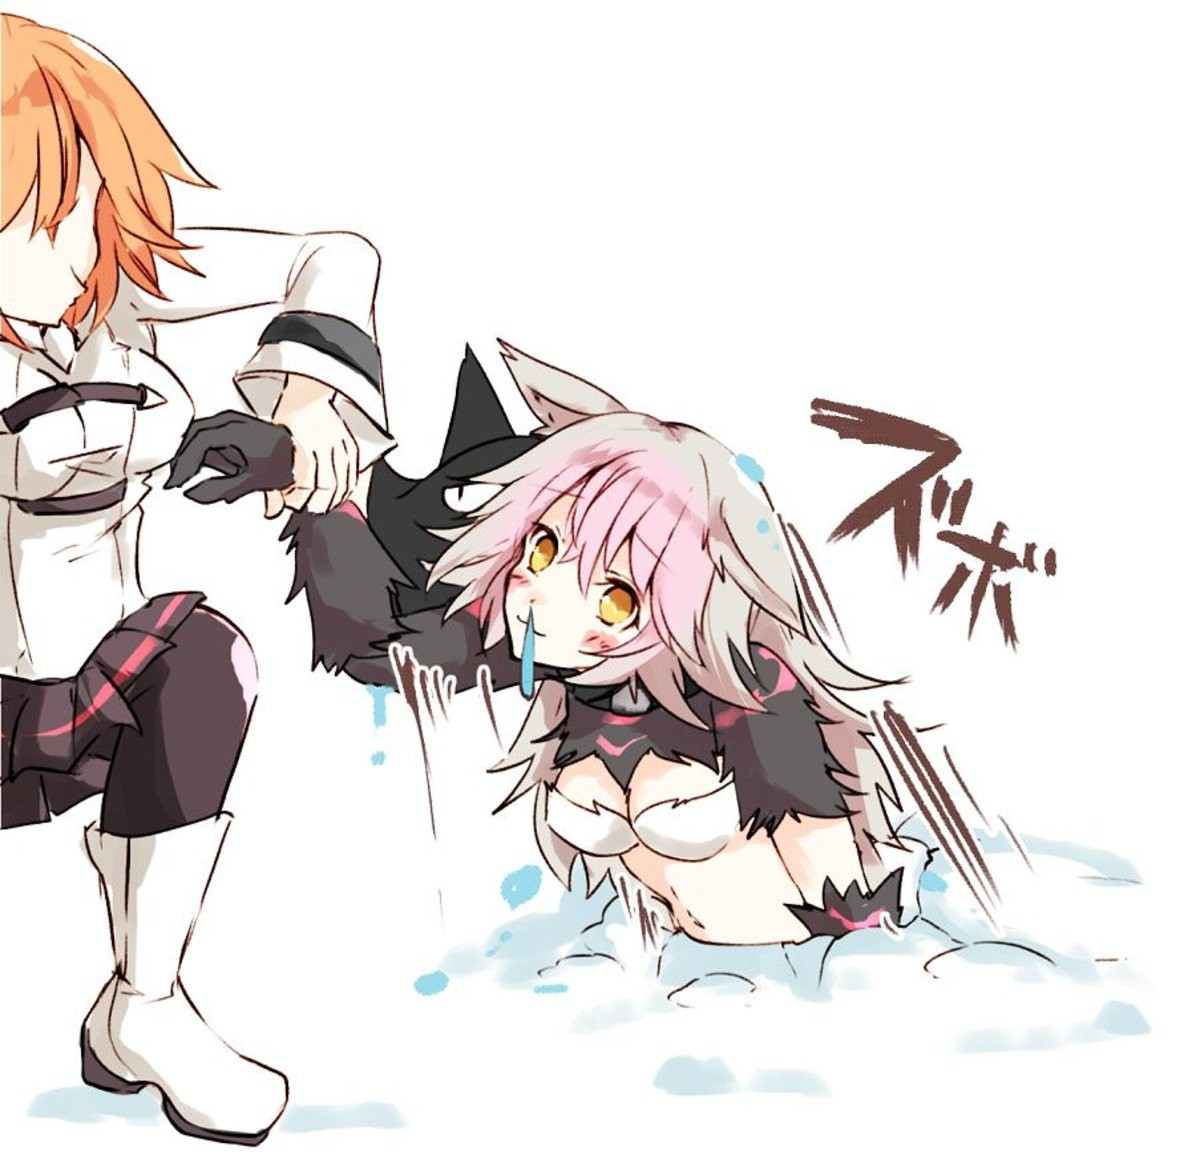 Frozen Kitty. Source join list: Fate (414 subs)Mention History join list: